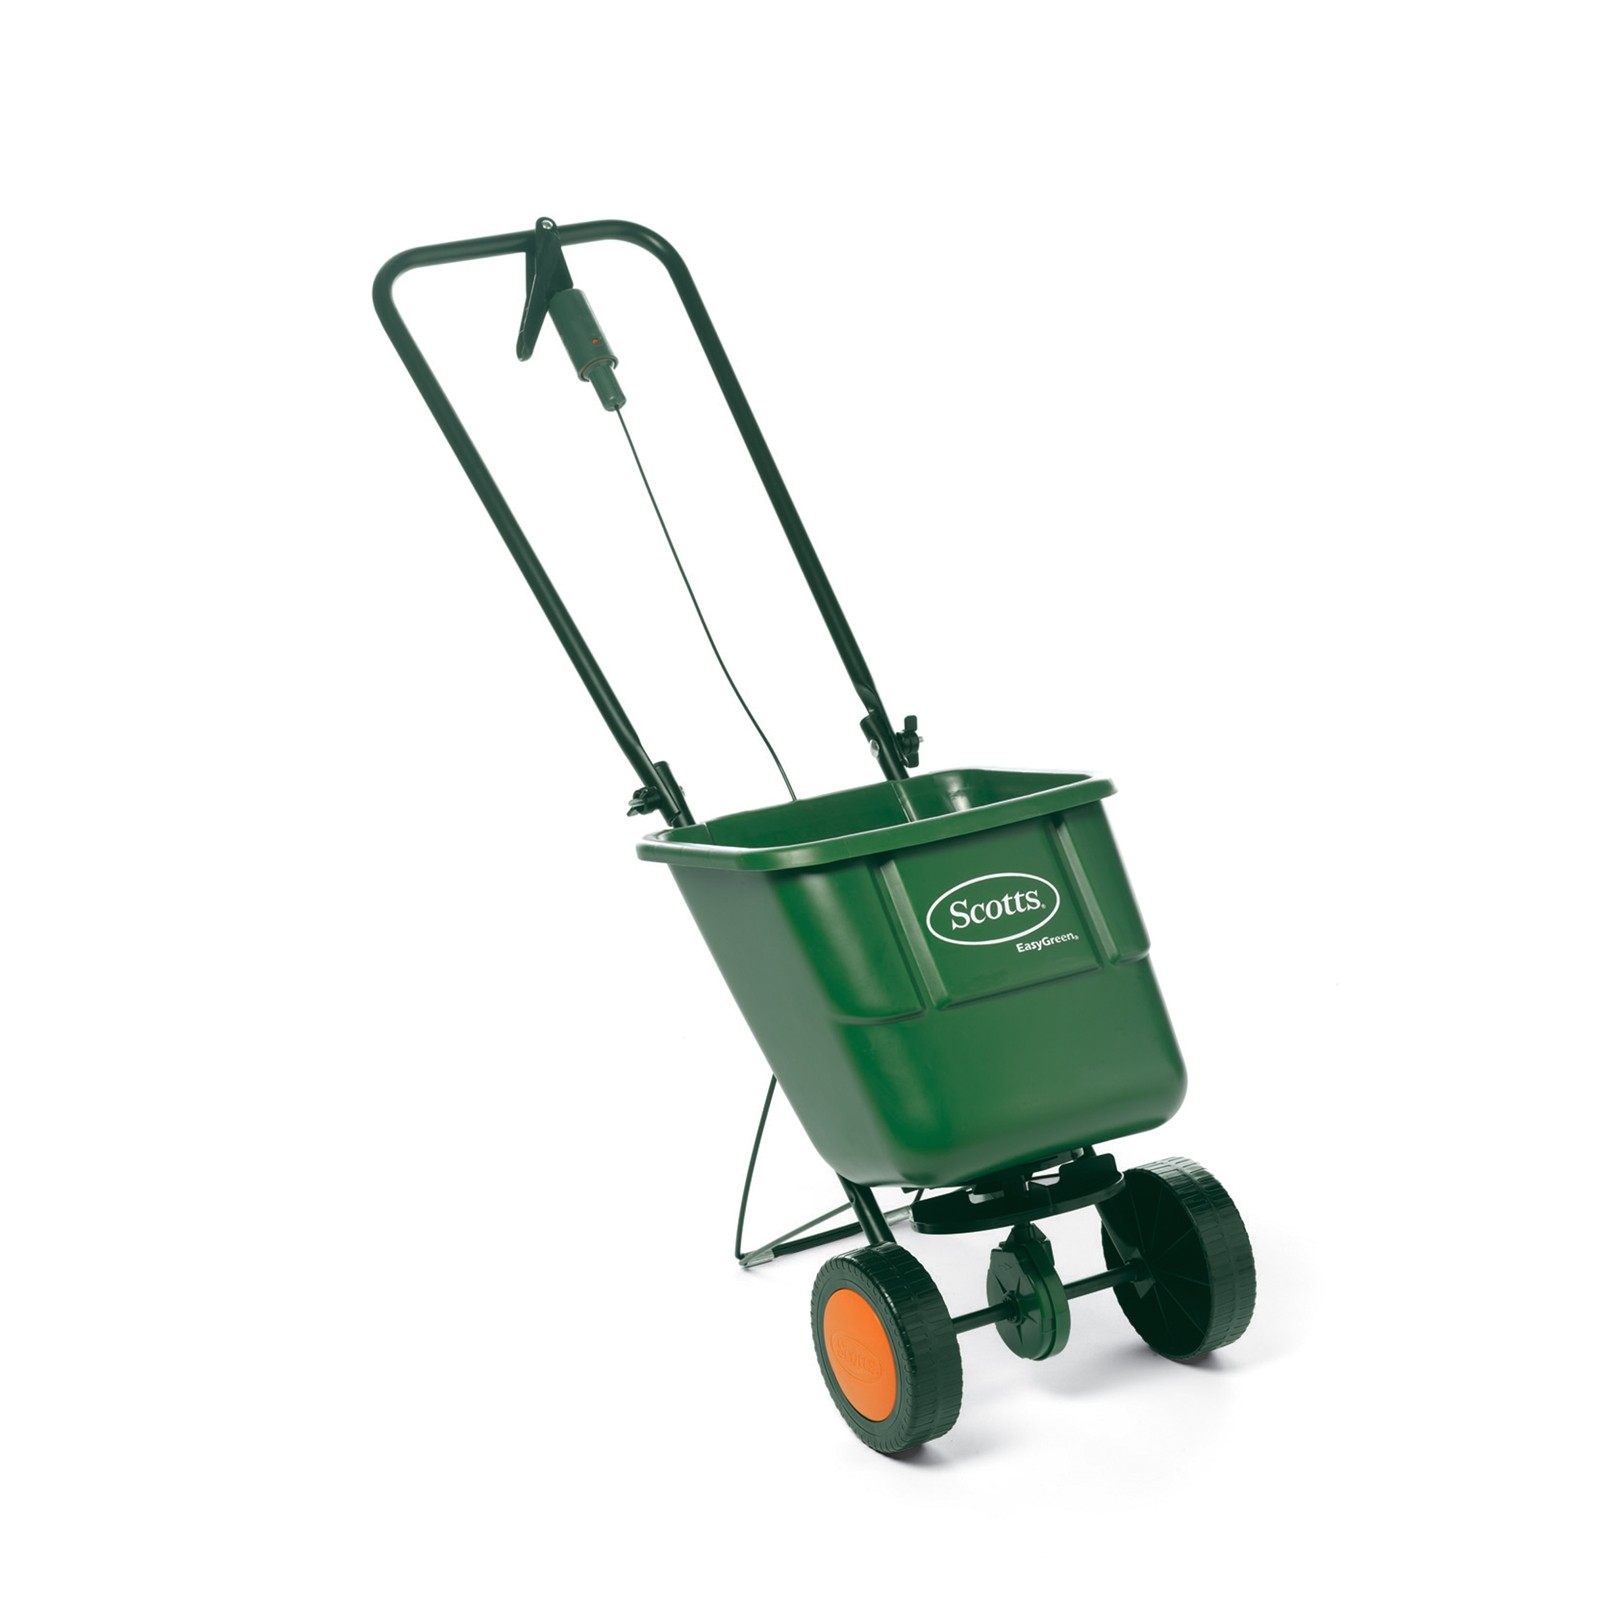 scotts lawn seed and fertiliser spreader